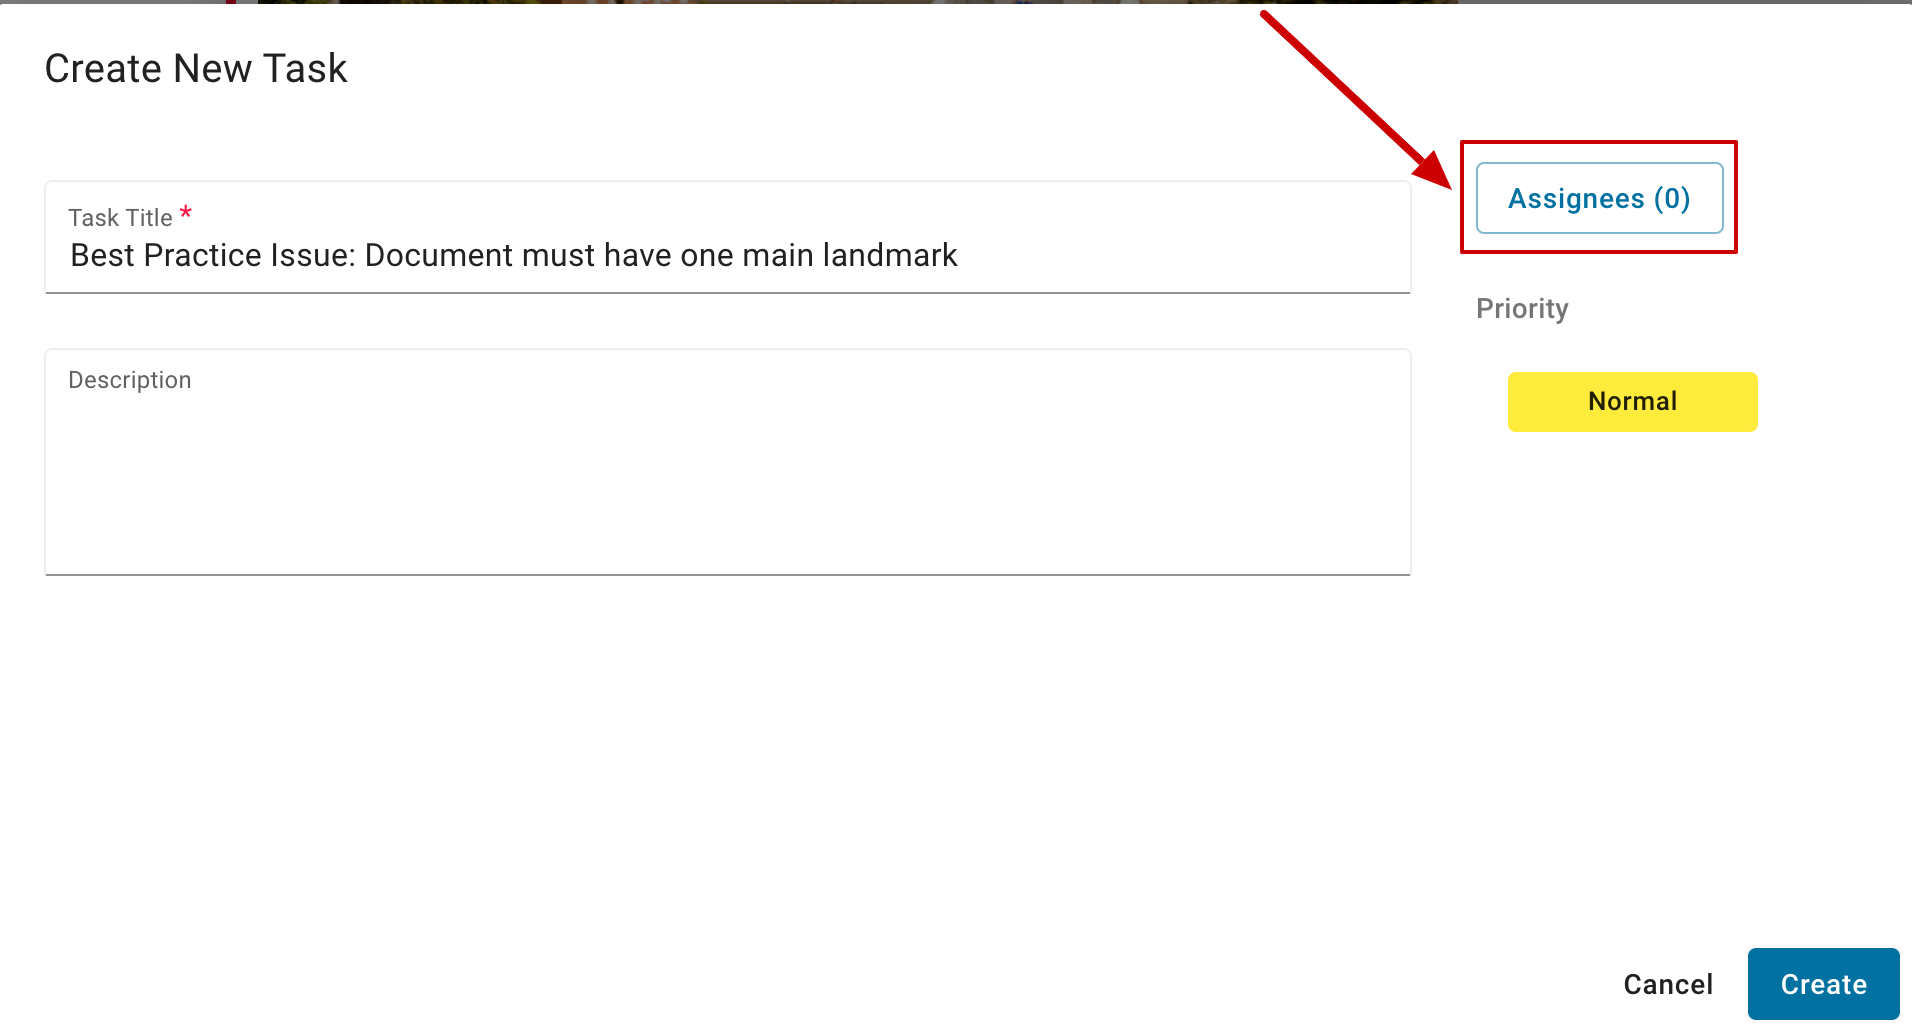 With the Create New Task dialog box open, the Assignees button is highlighted in red.